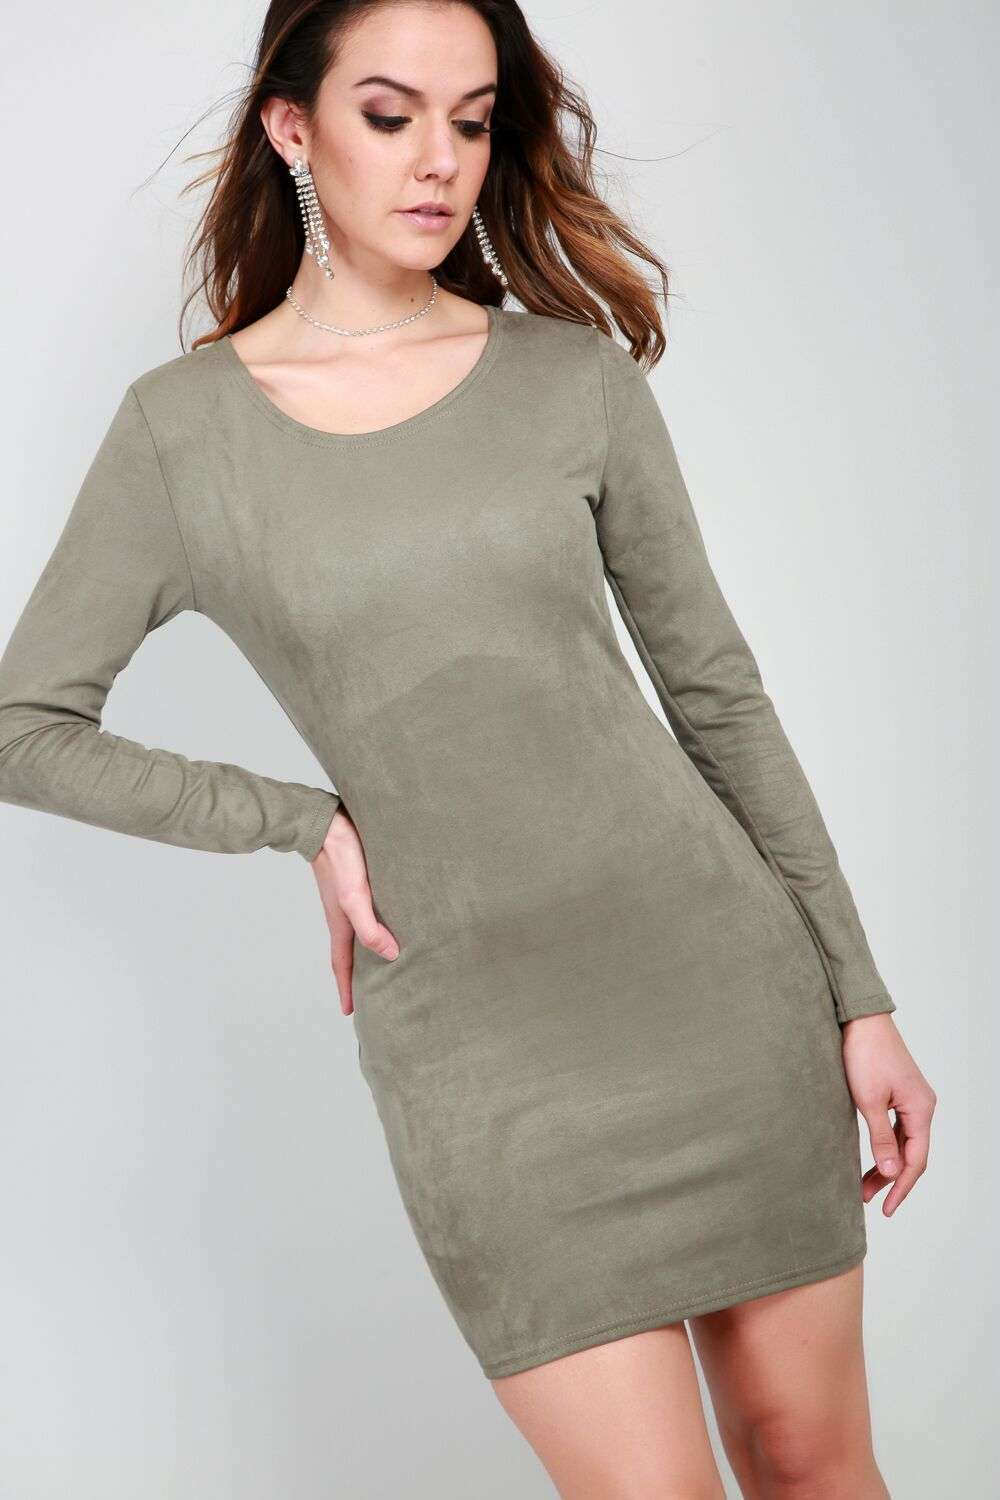 Hallie Long Sleeve Faux Suede Bodycon Dress - bejealous-com